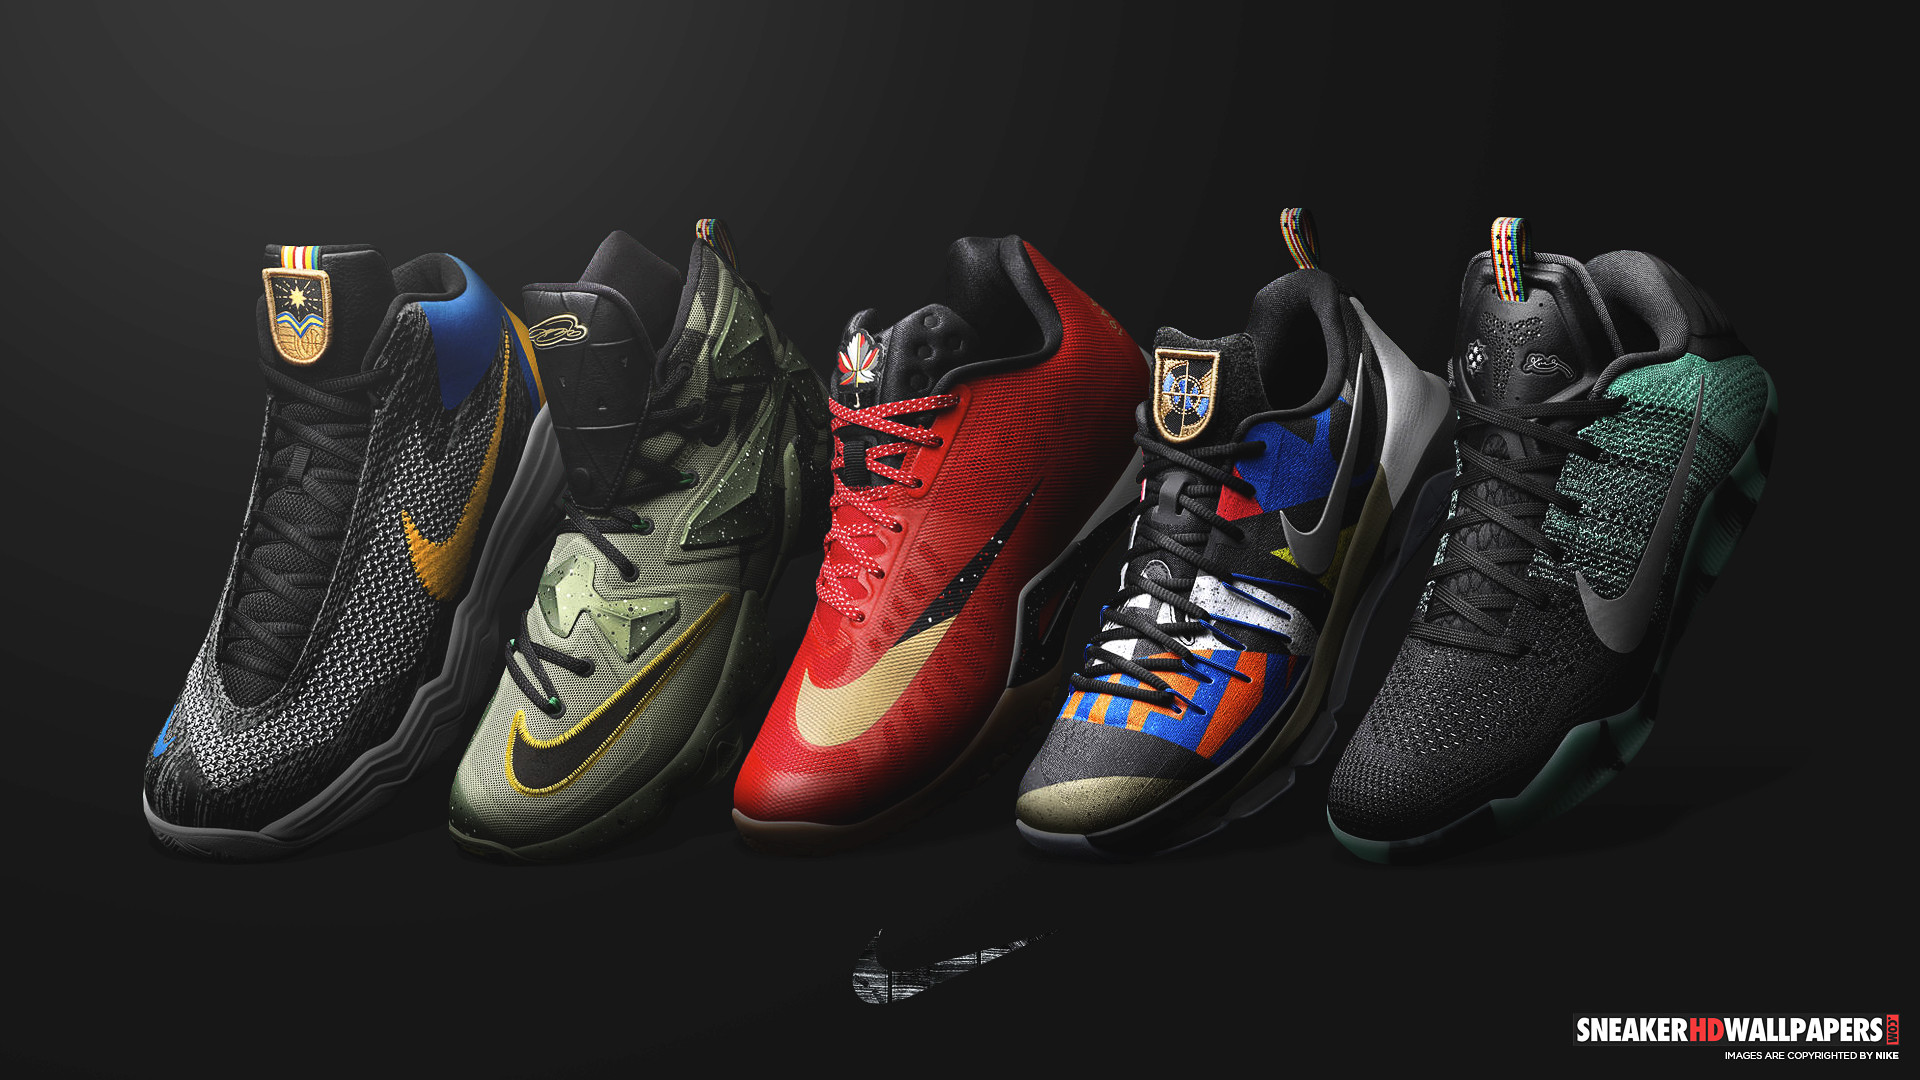 8e29d7b46b5 Background Nike Sneakers Wallpaper - larmoric.com